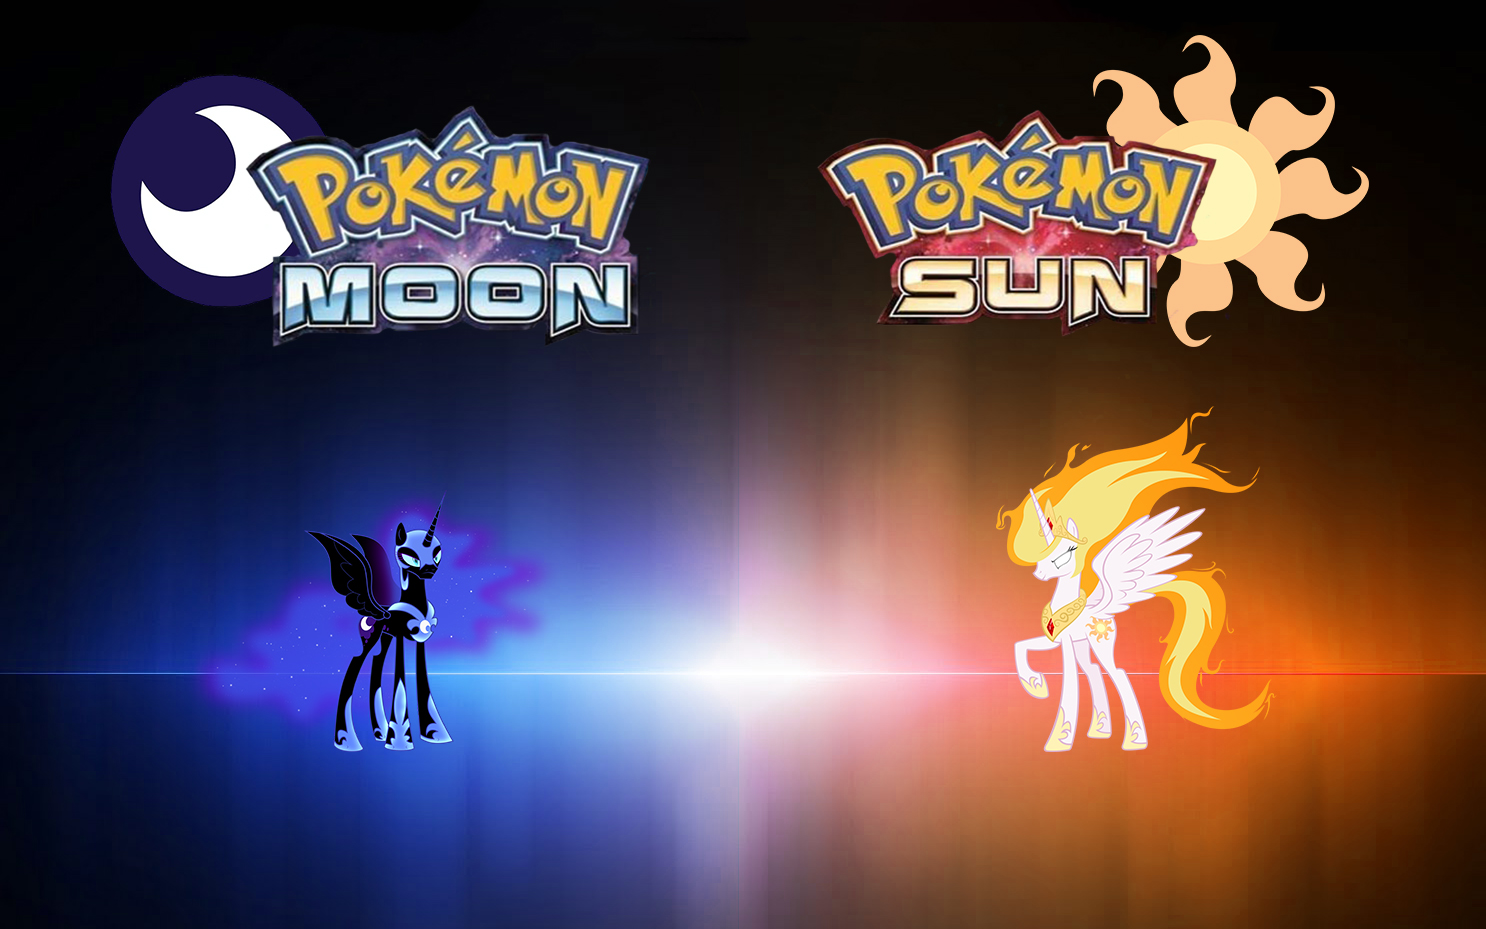 Pokemon Sun And Moon Wallpaper: Pokemon Sun And Moon MLP Version By TheOldMagician On